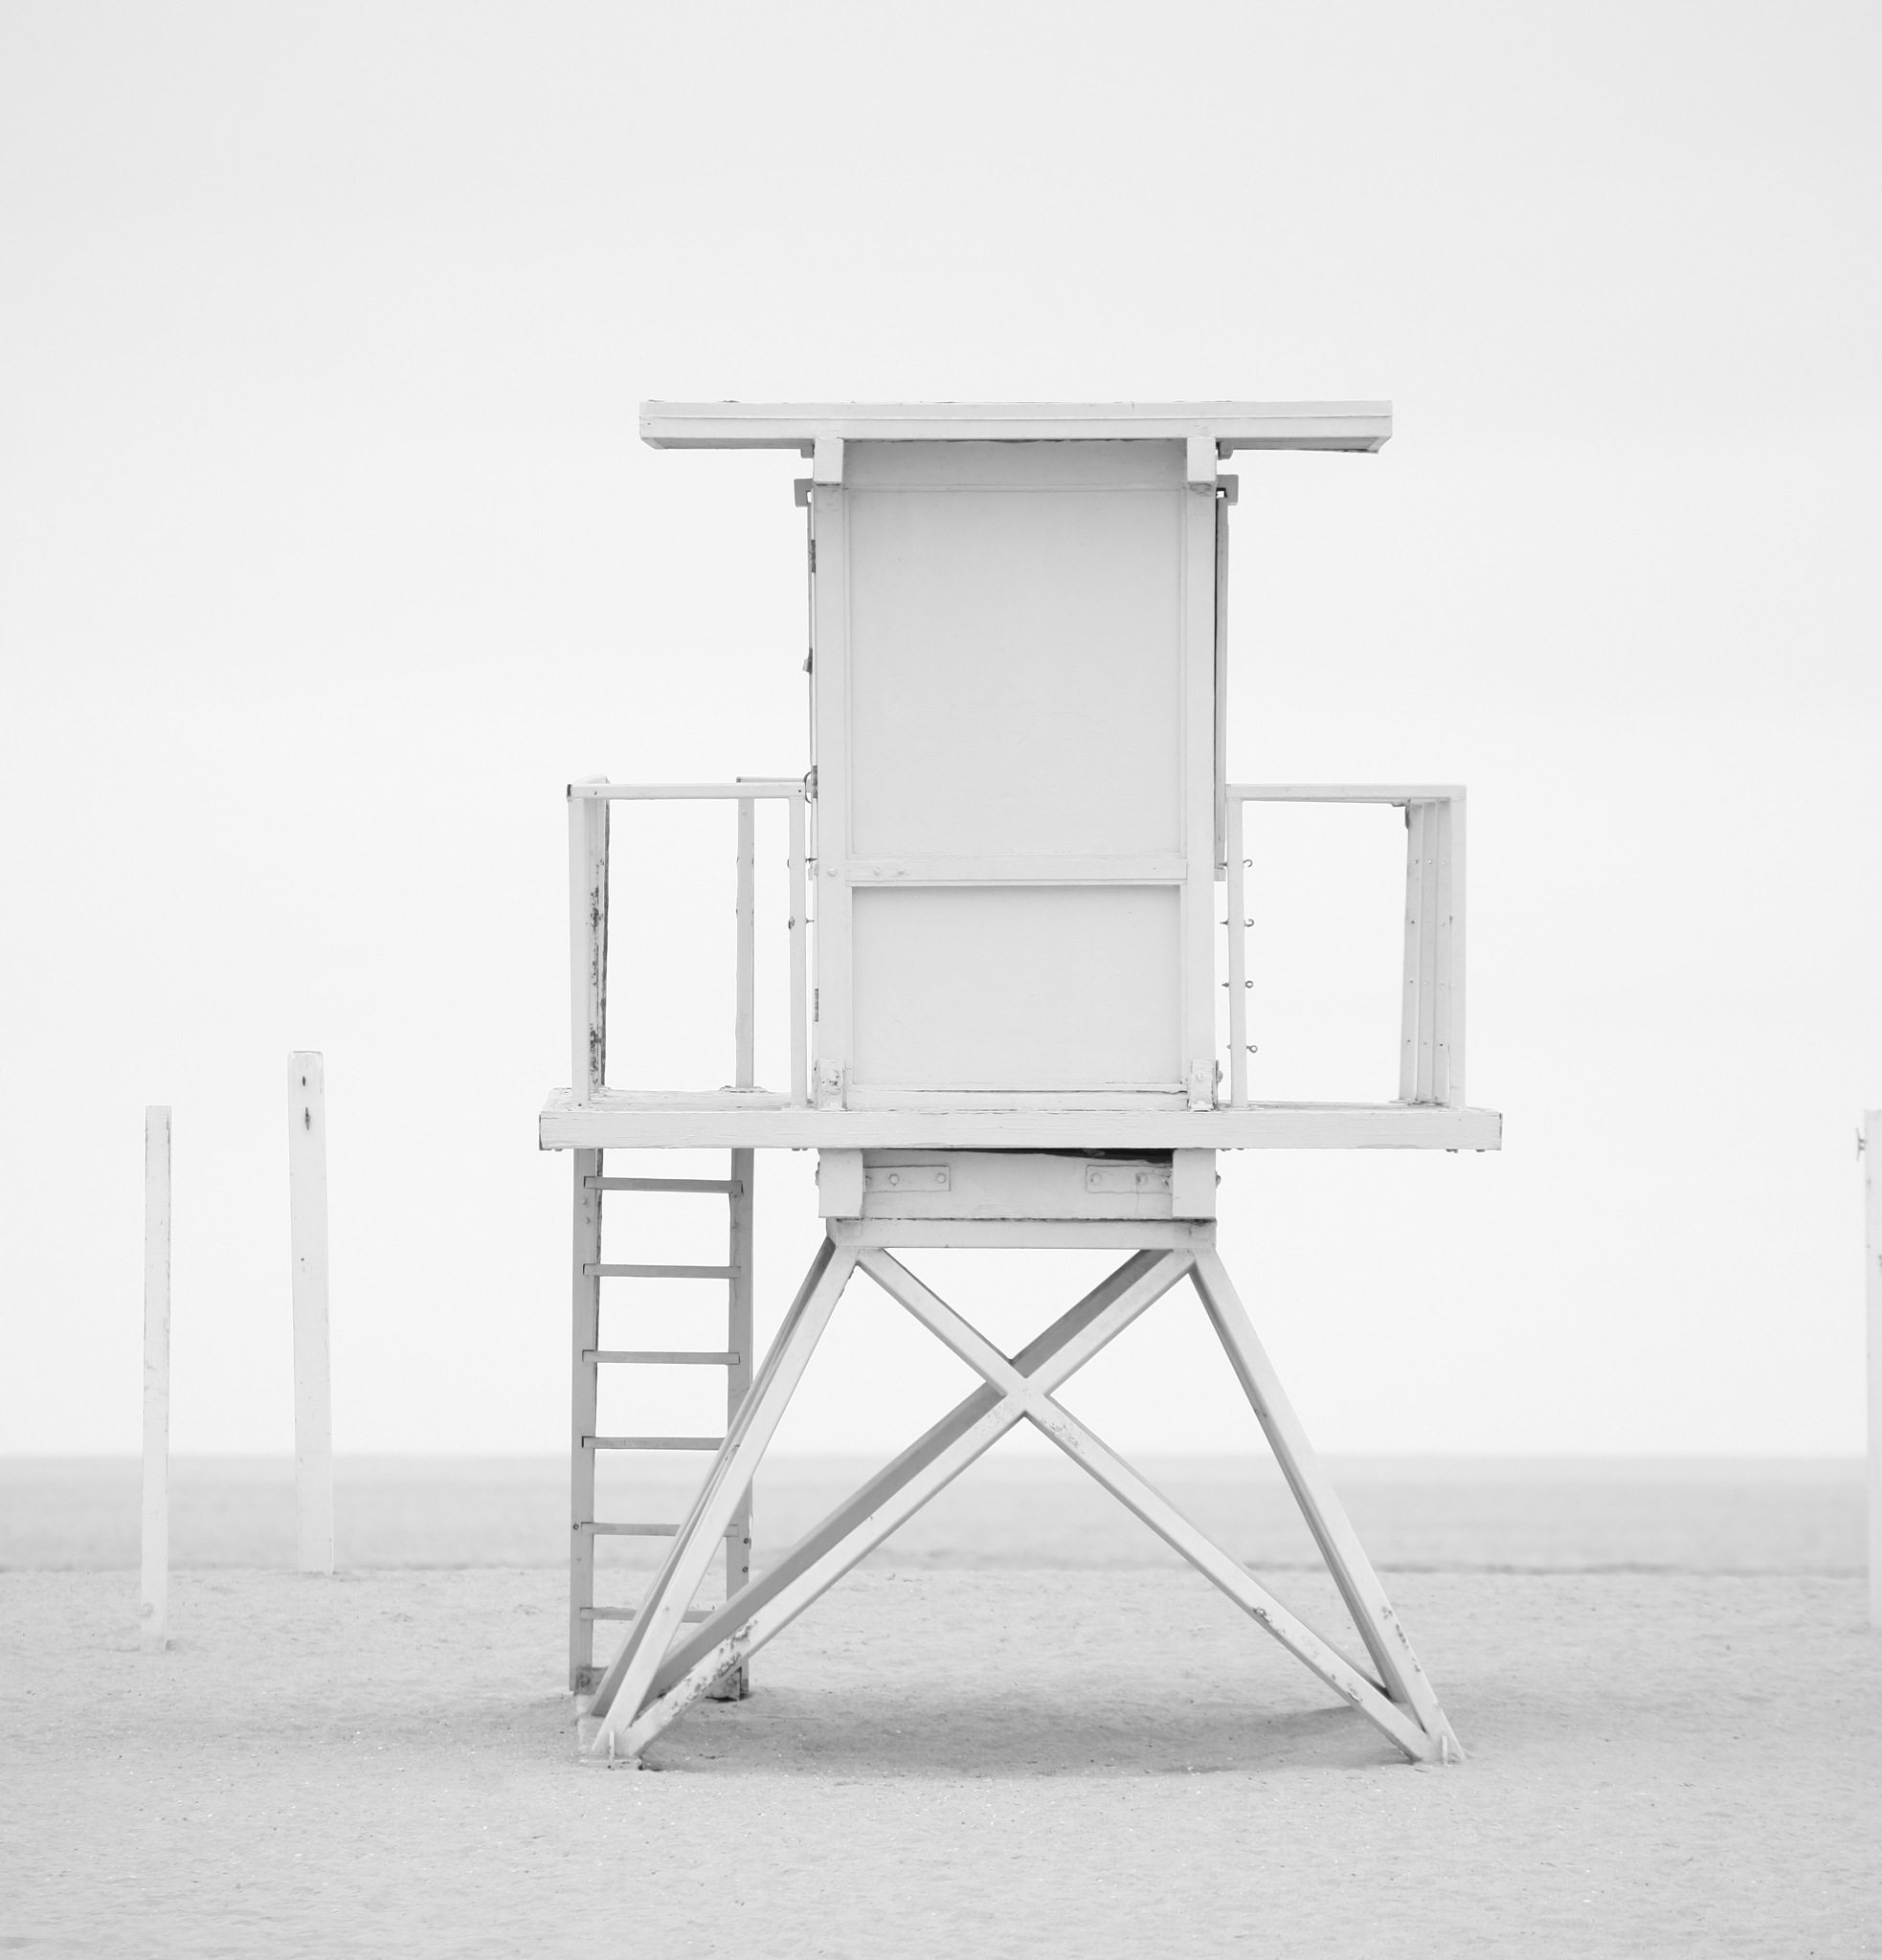 Iconic lifeguard tower by Kate Houlihan